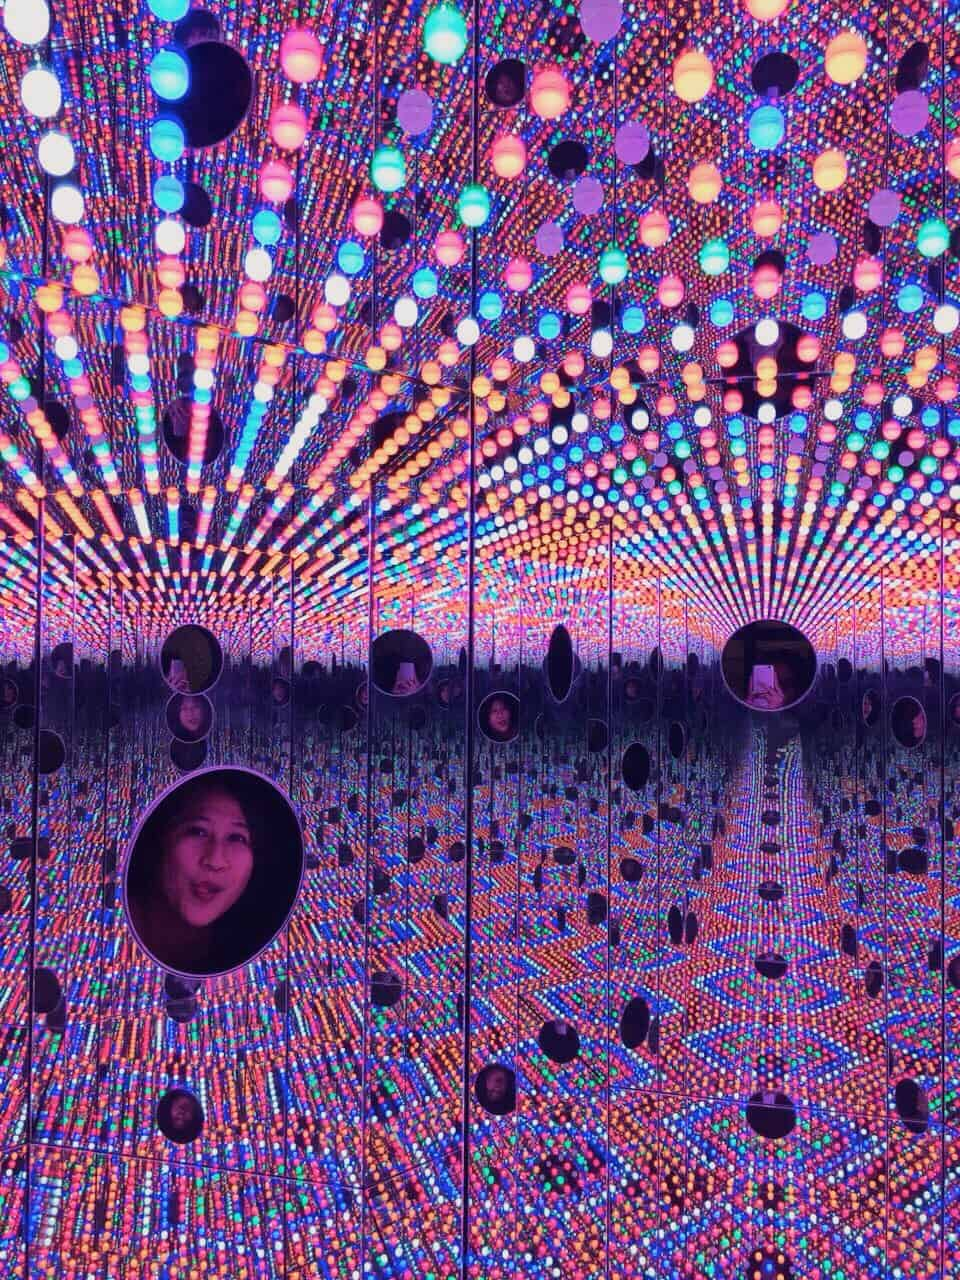 yayoi kusama i want to love on the festival night travelbeib